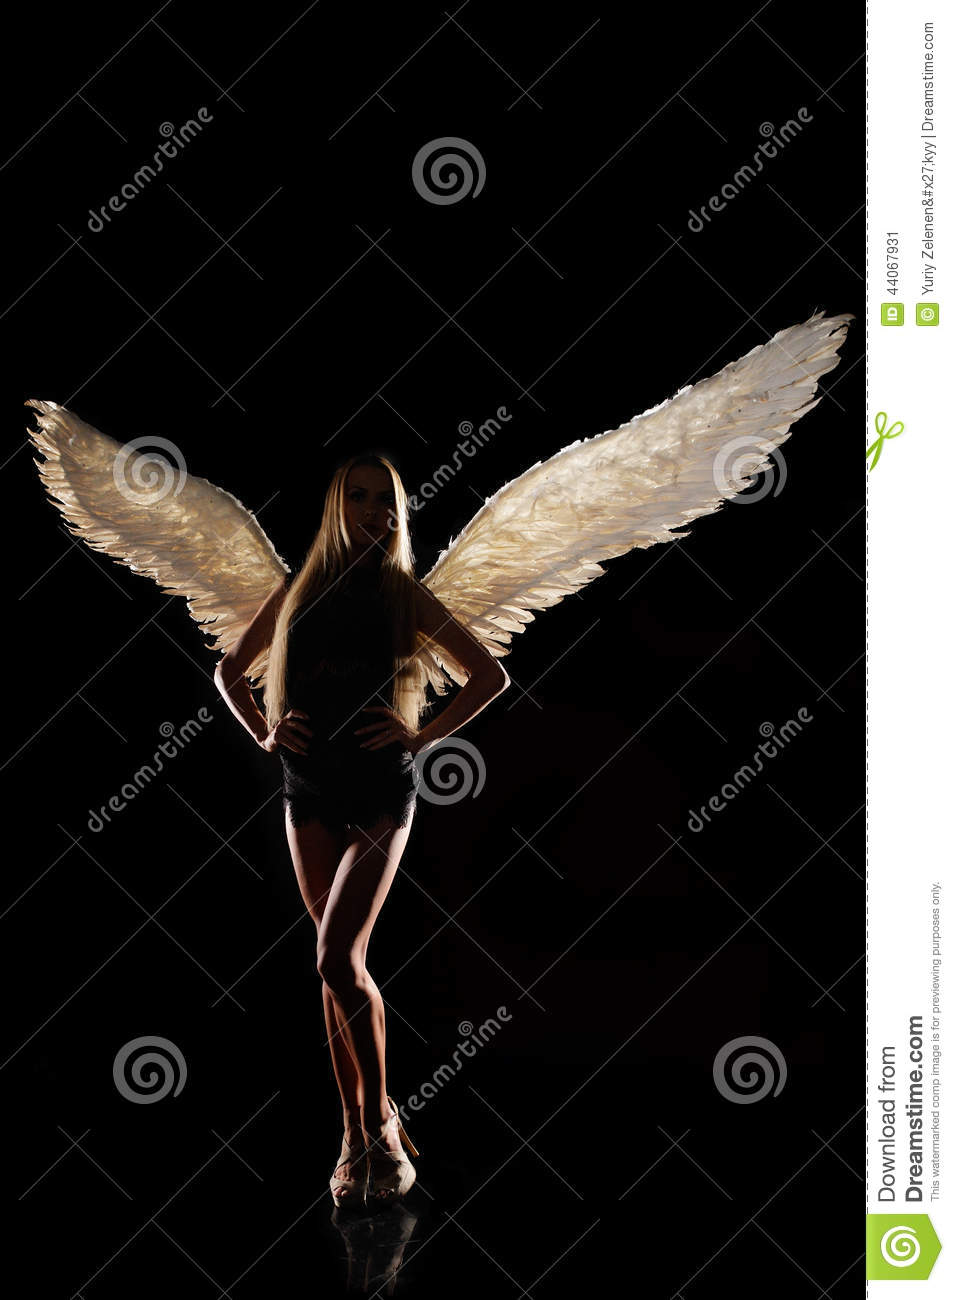 angel wings black background - photo #38